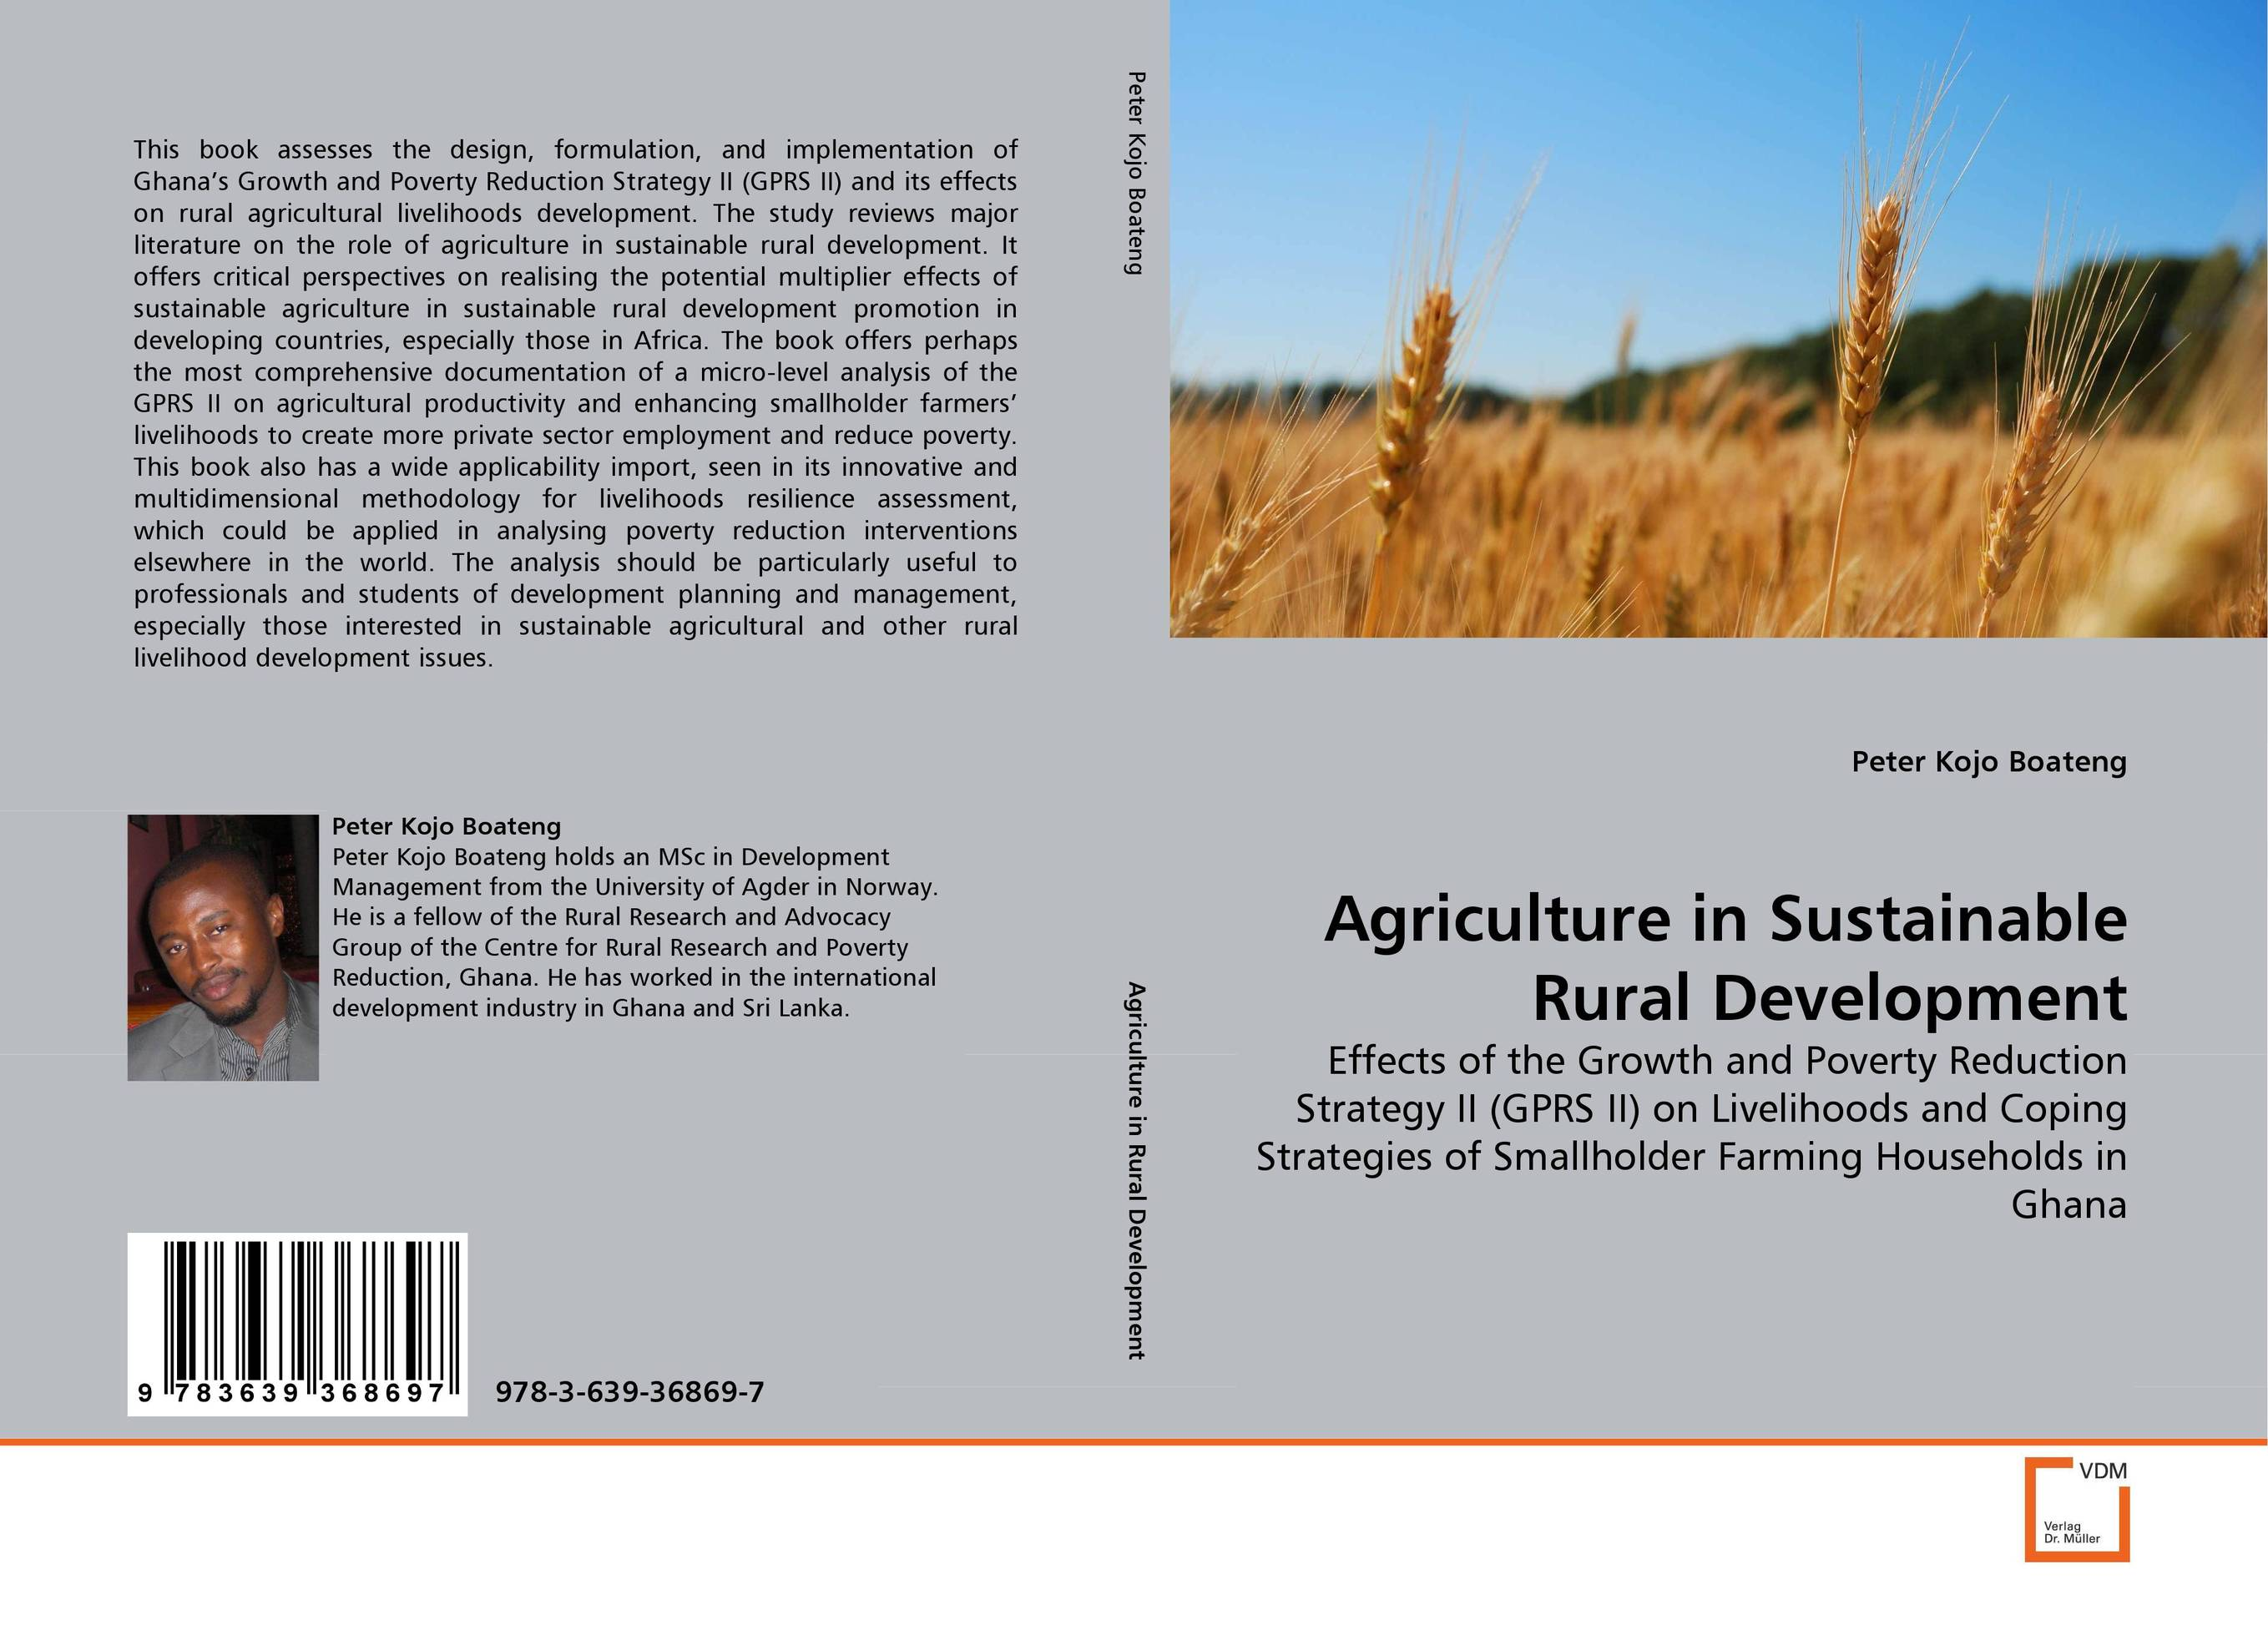 Agriculture in Sustainable Rural Development father's role in enhancing children's development